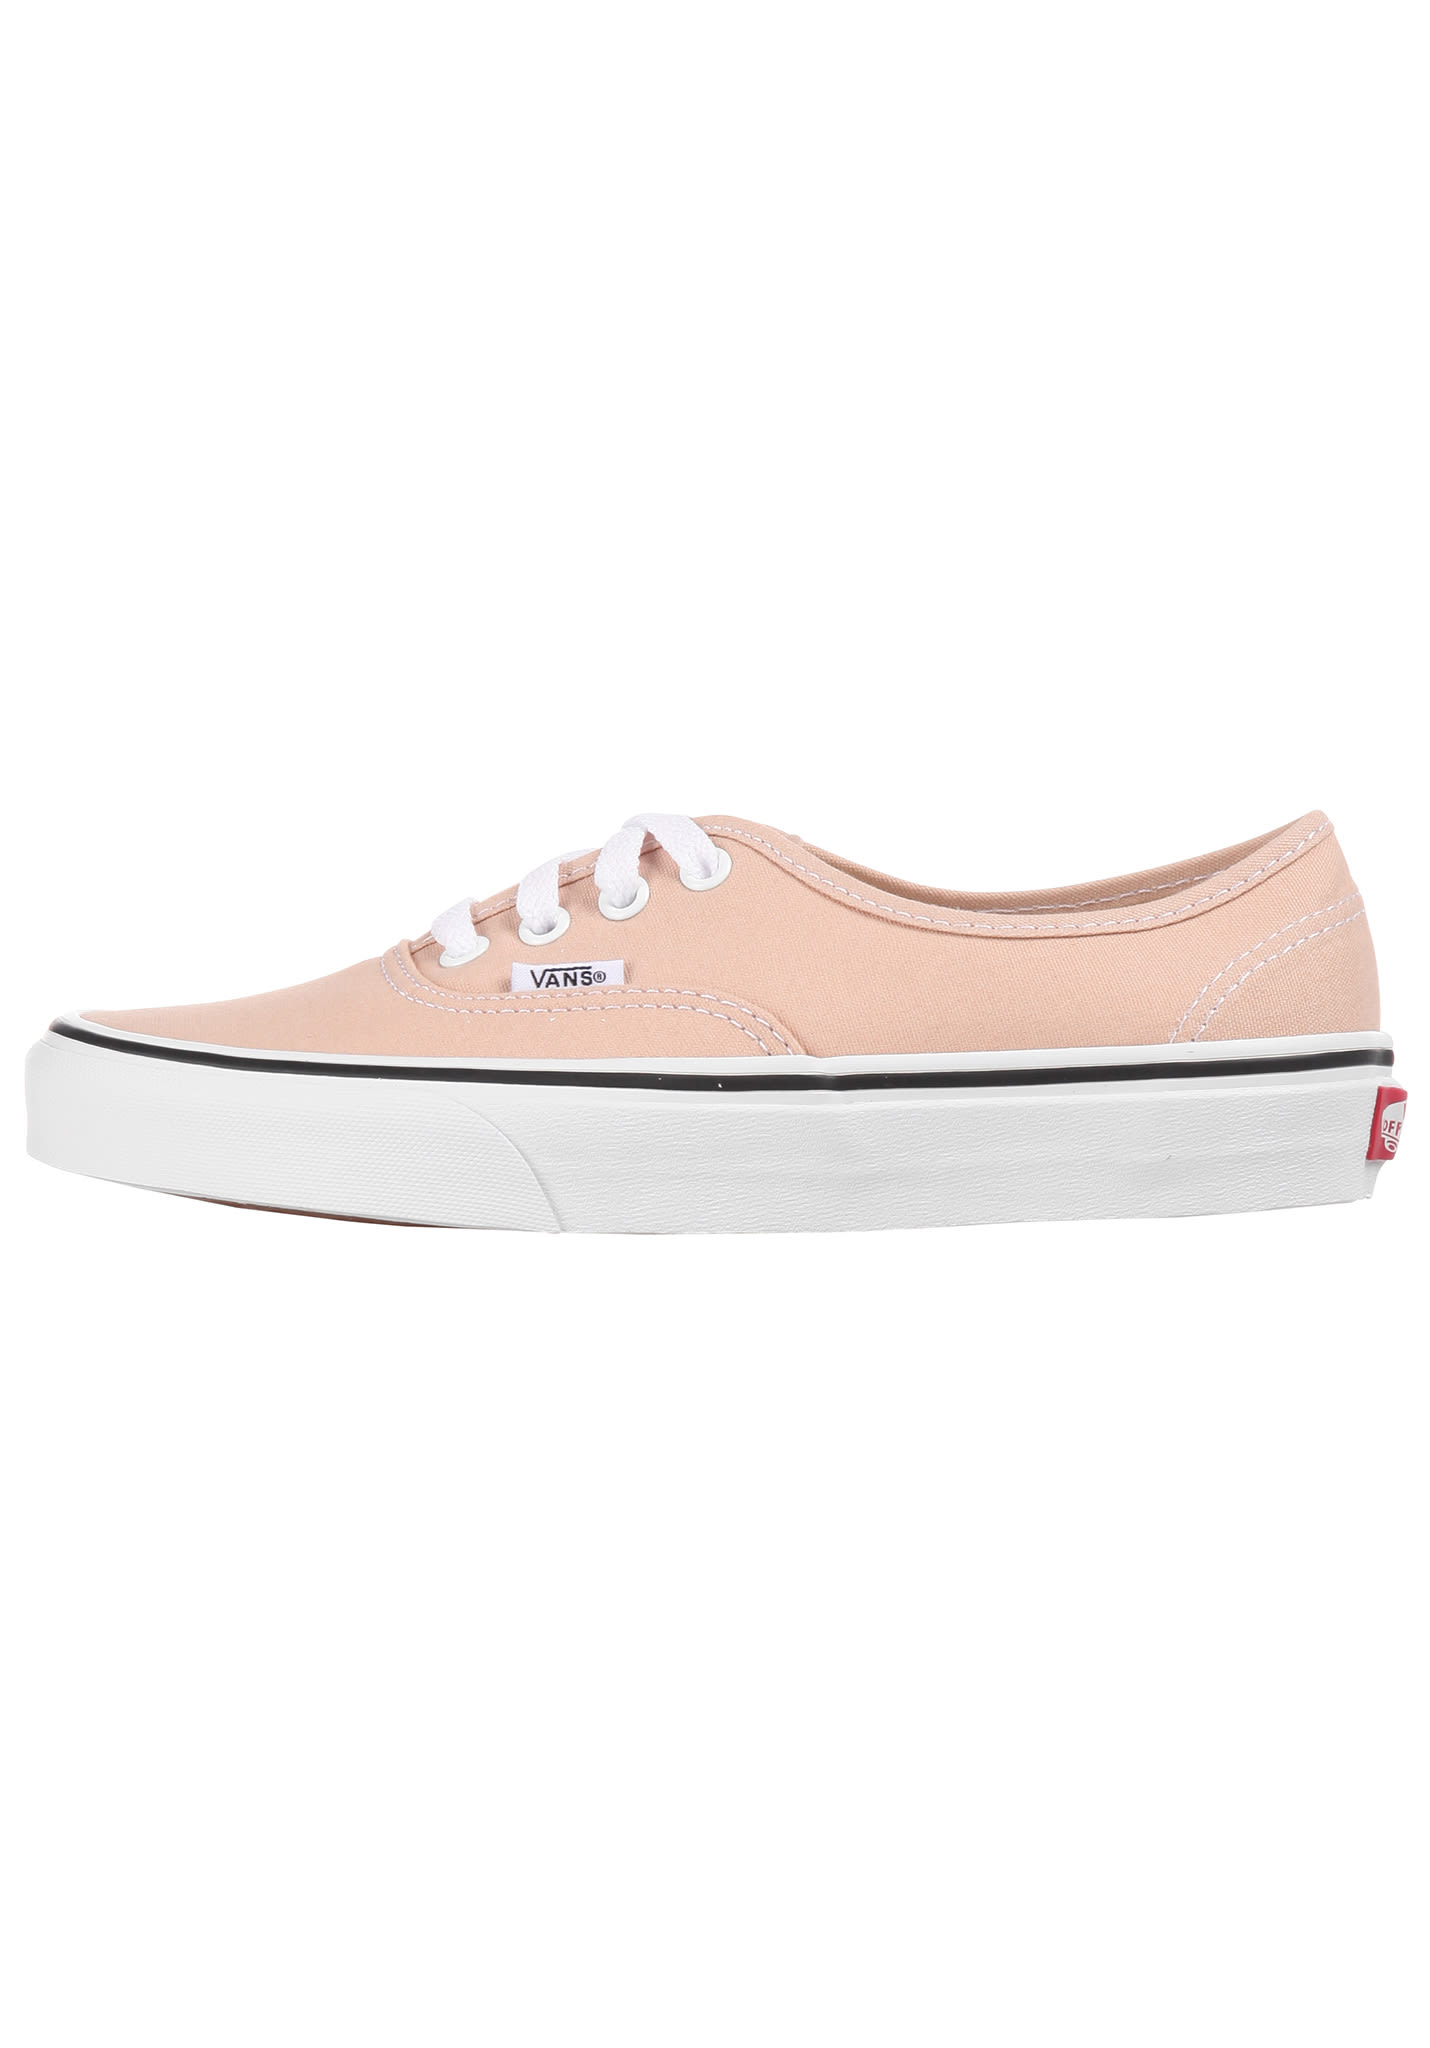 VANS Authentic - Sneaker für Damen - Pink